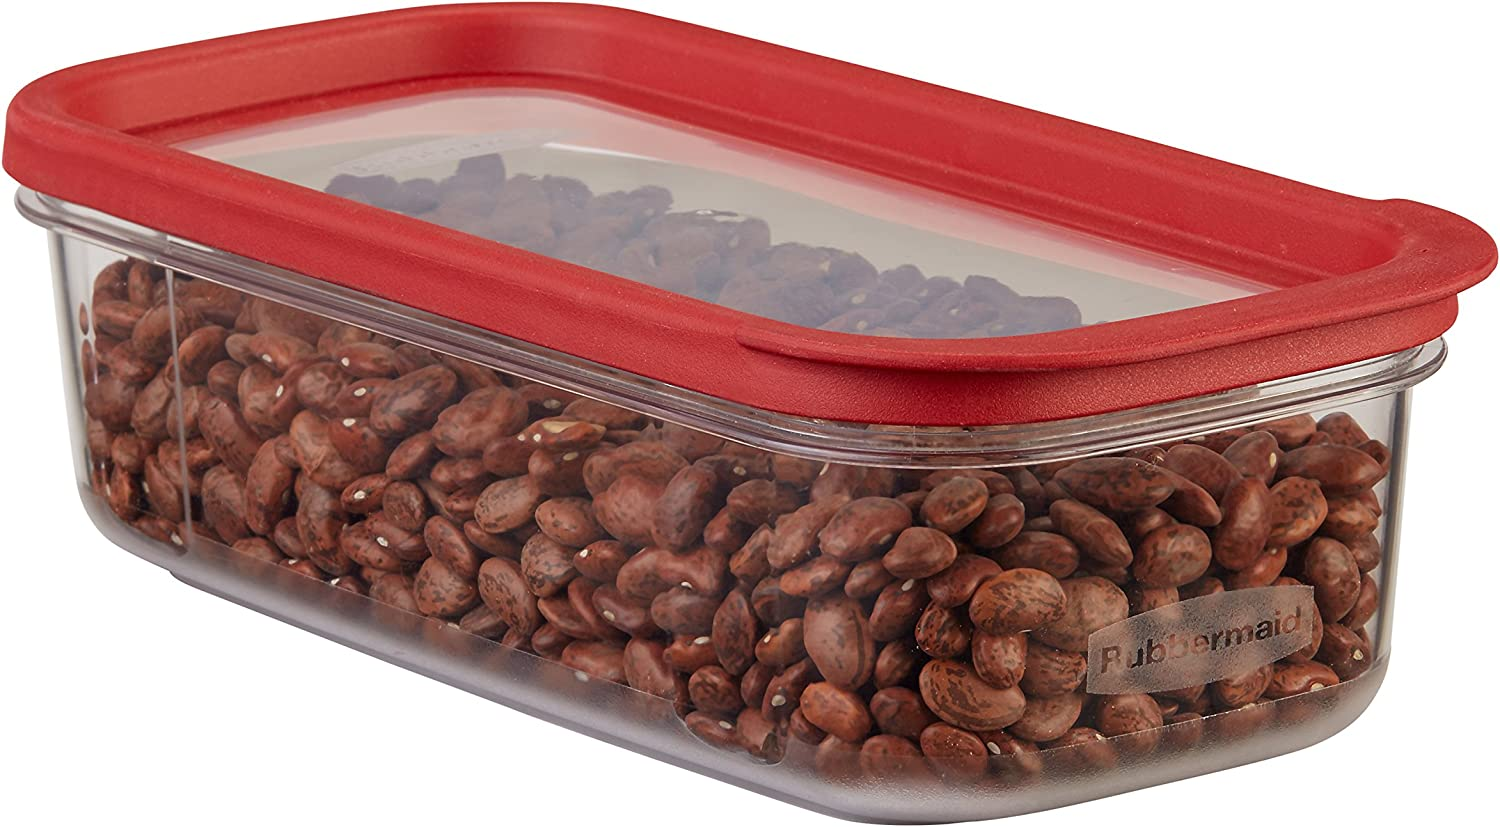 Rubbermaid 5-Cup Modular Dry Food Storage Zylar Container